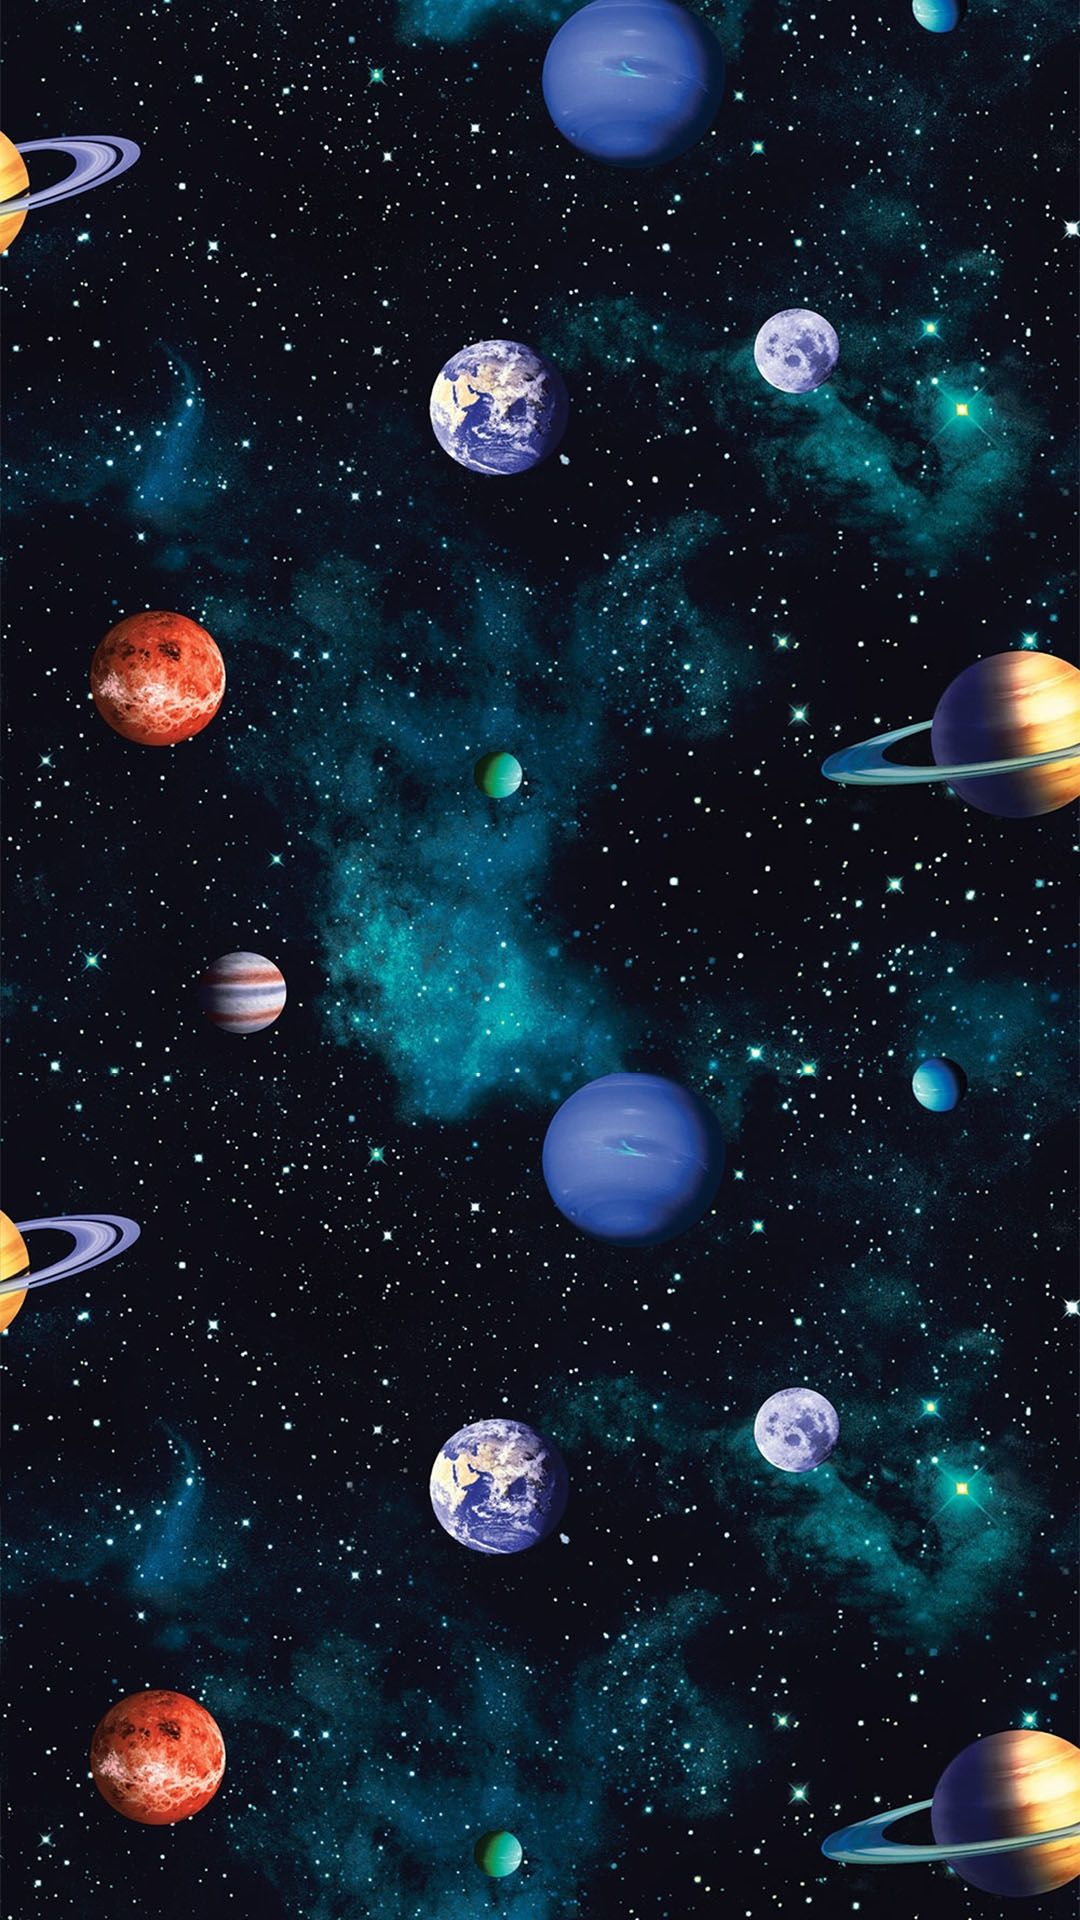 The Cosmos Space Wallpaper by I Love Wallpaper.   Ideal for a bedroom or office, this space print wallpaper is super cool for any Sci-Fi lover.  #ilovewallpaper #monochrome #wallpaper #homedecor